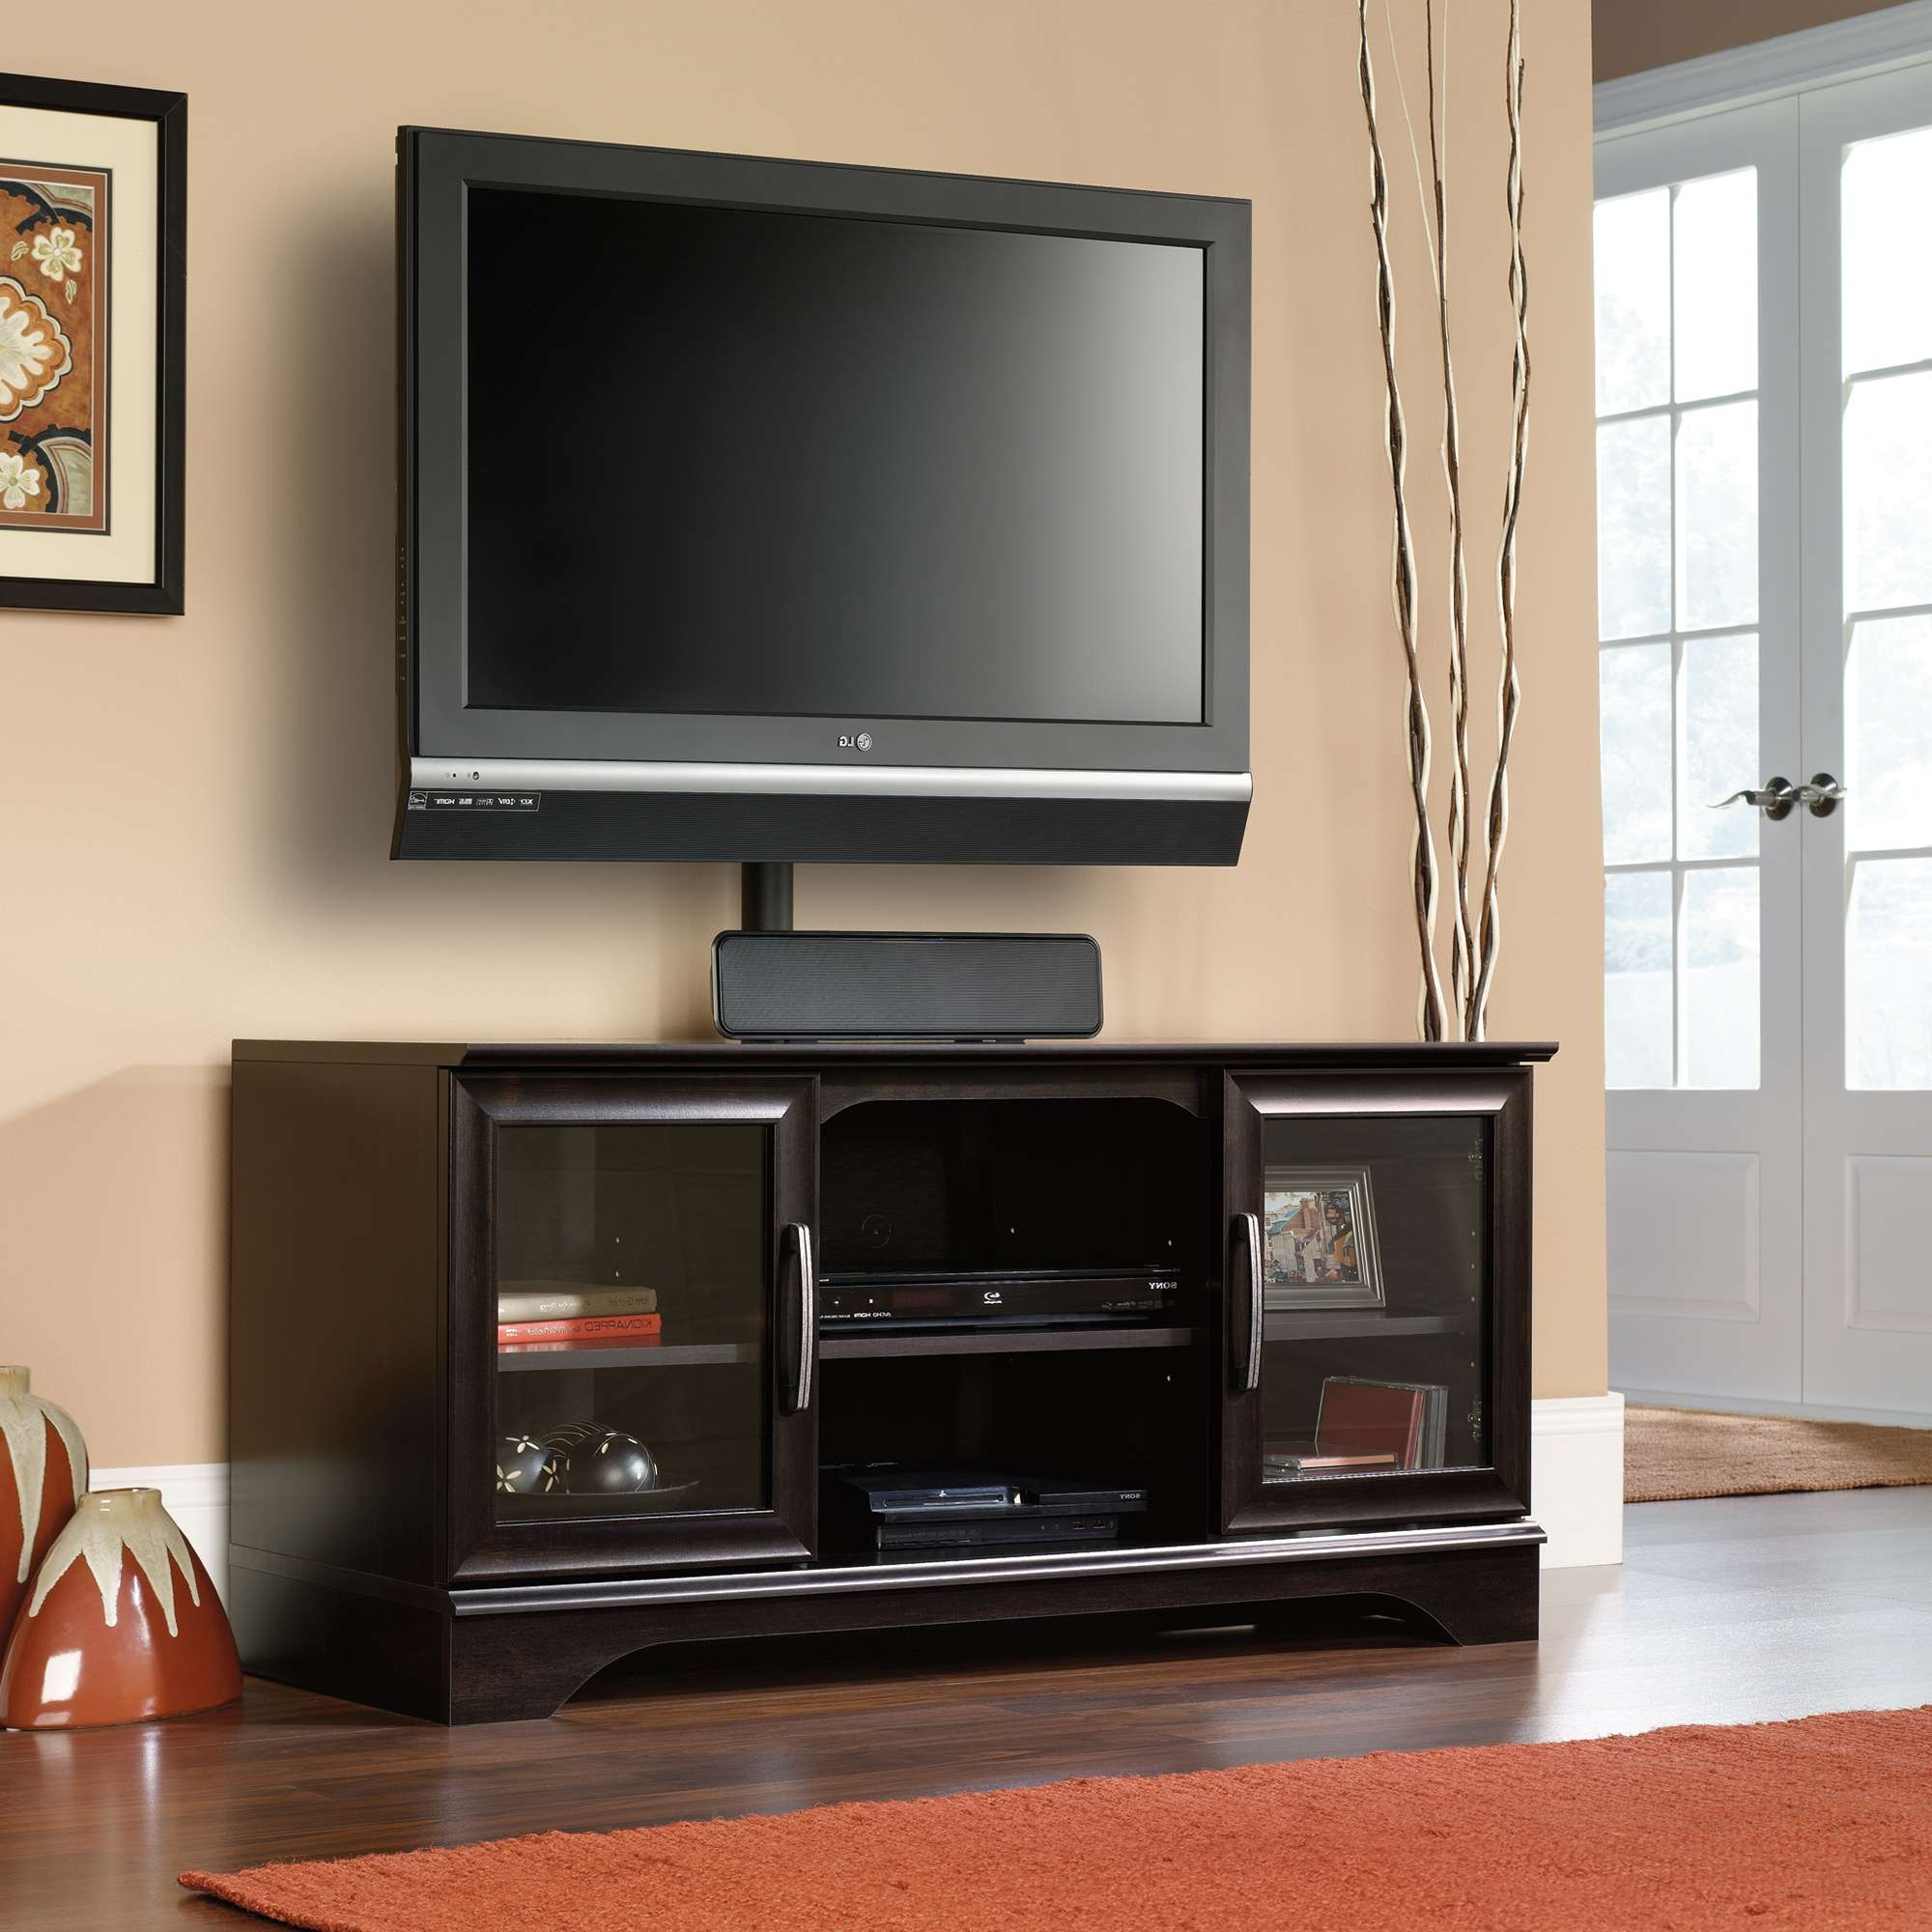 Furniture Entertainment Centers For Inch Tver Stand Stands Wall For Entertainment Center Tv Stands (View 5 of 15)